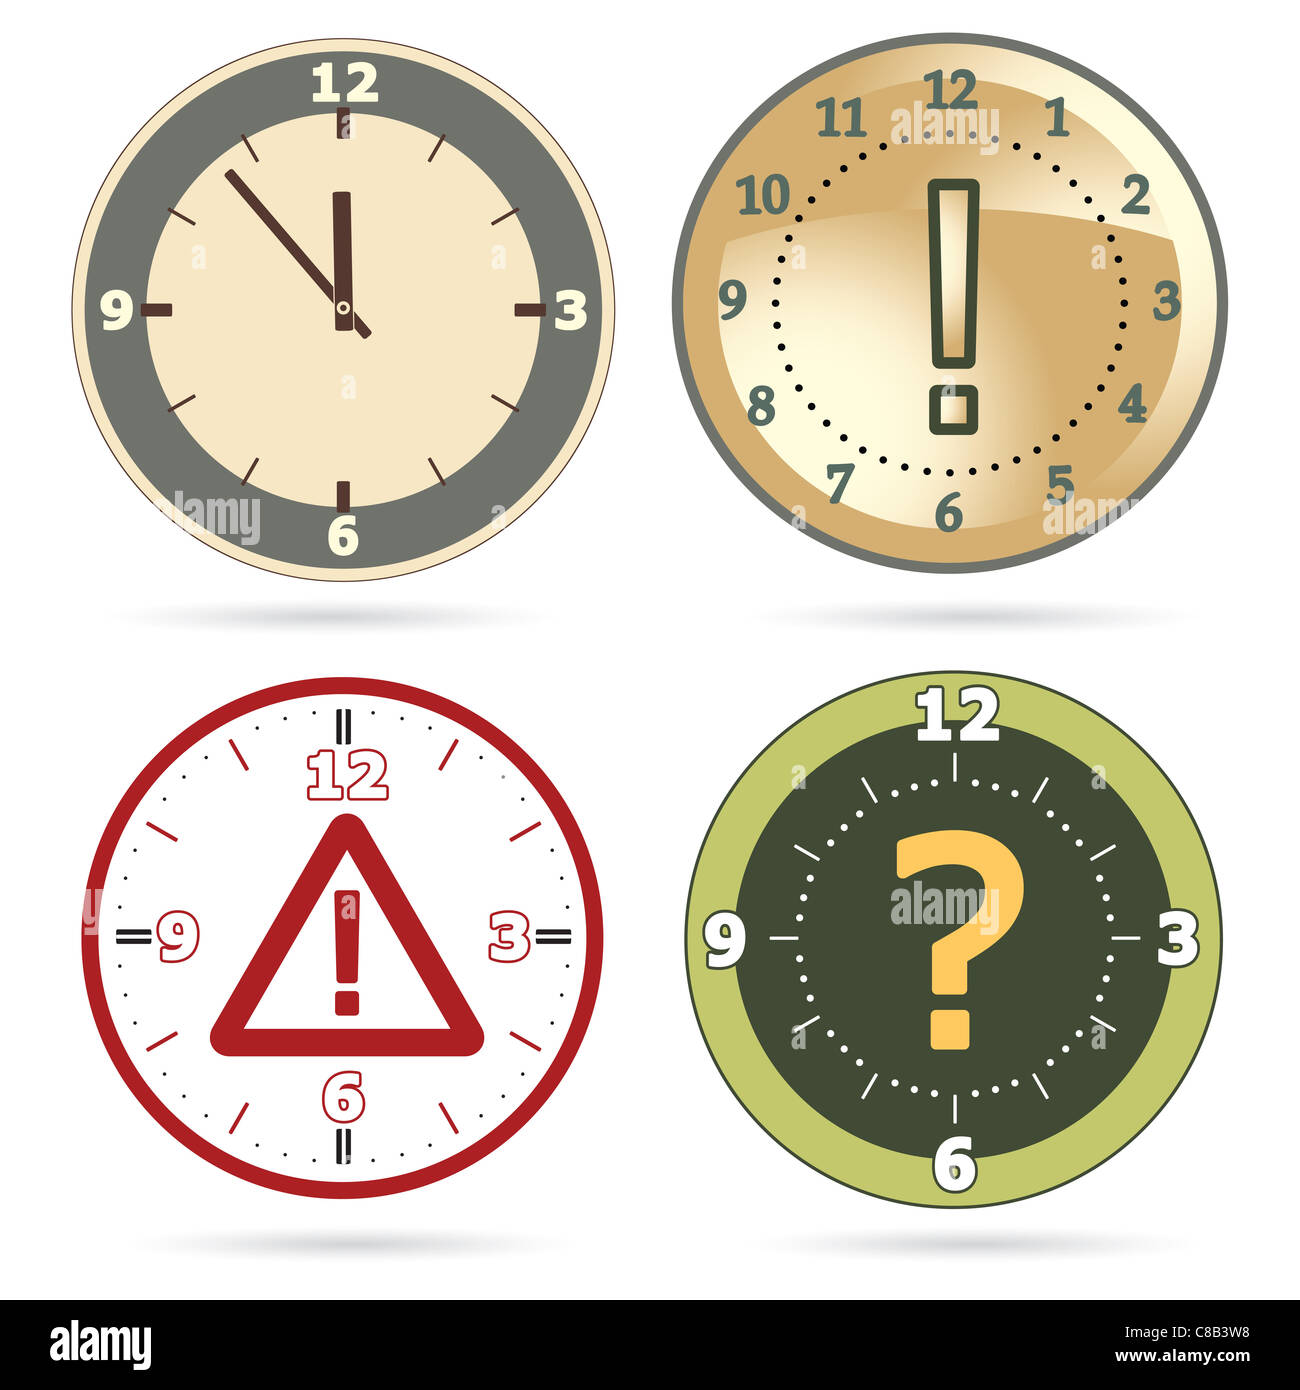 Clock set with question, exclamation marks and warning sign instead of clock hands - Stock Image